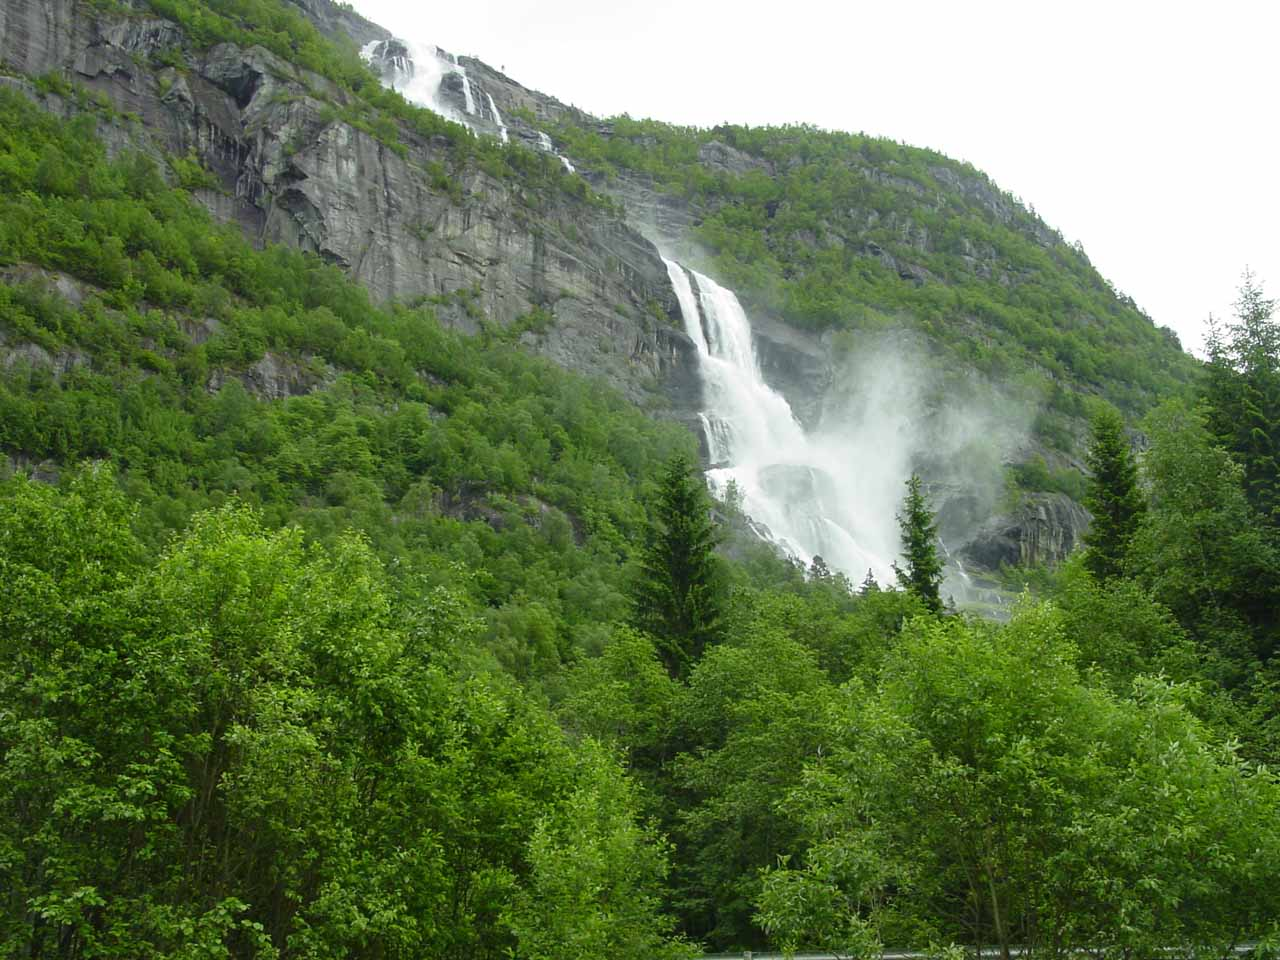 After having my fill of Strondsfossen, I turned around and this was the waterfall Tjørnadalsfossen that took me by surprise